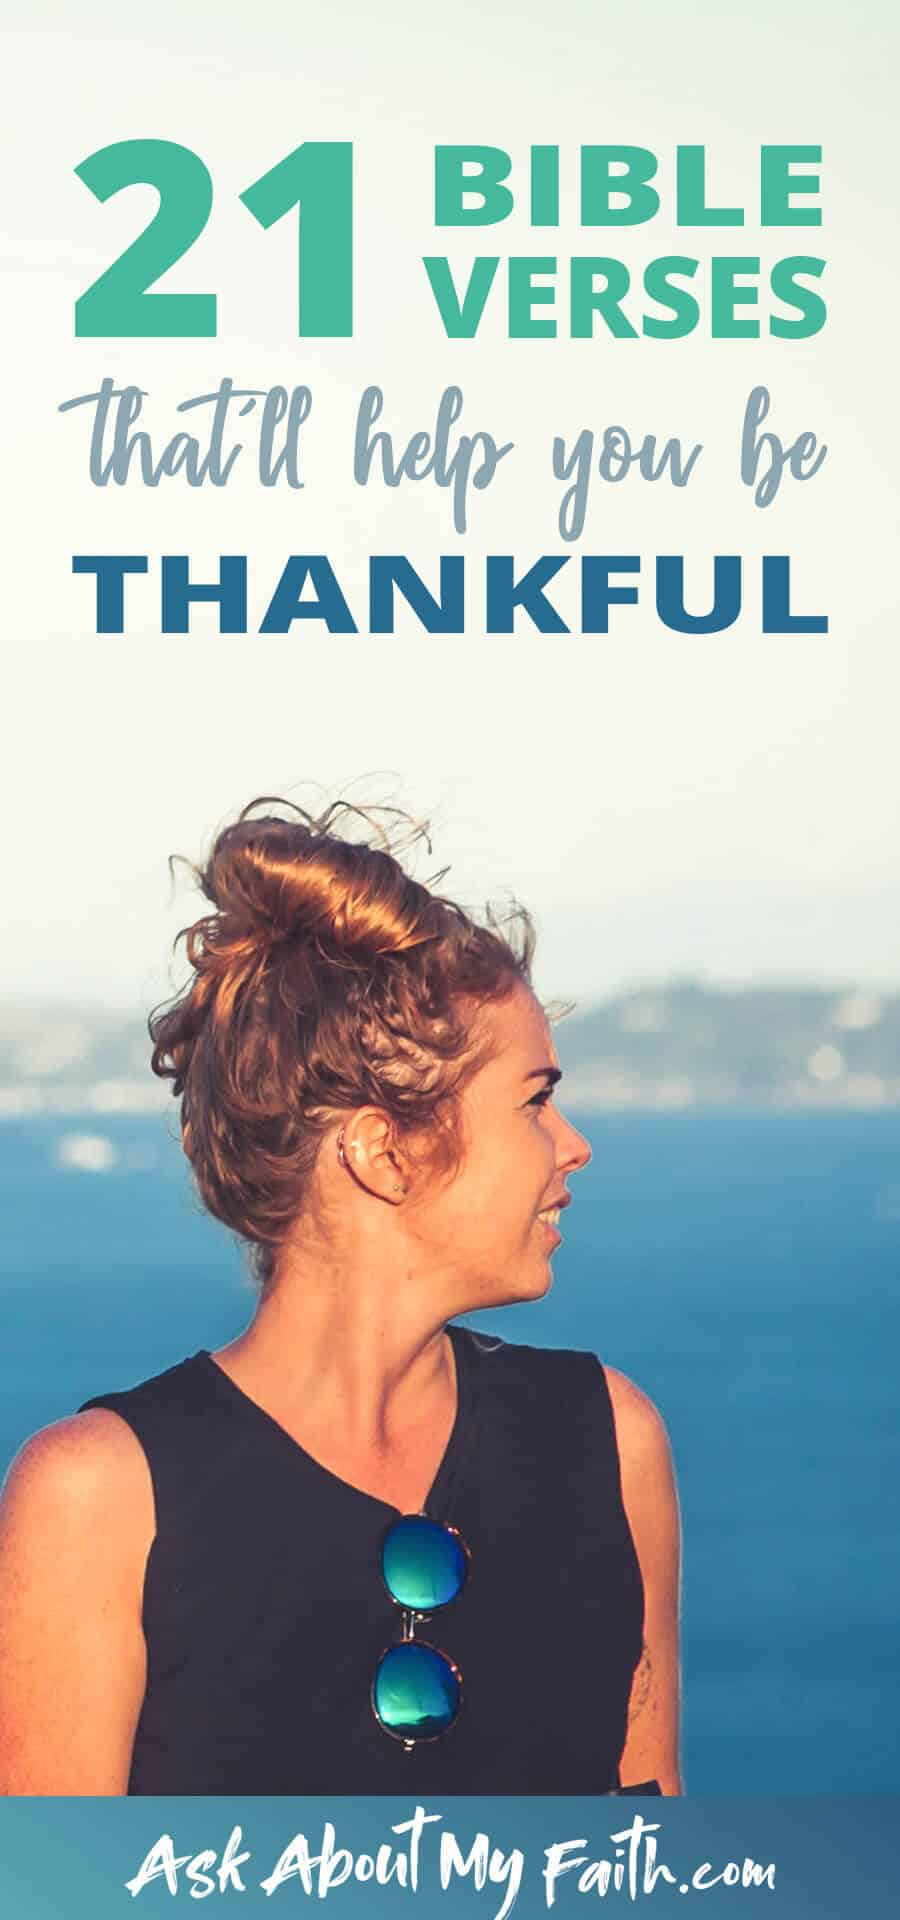 21 Bible Verses to Help You Be Thankful | Gratitude | Christianity | Faith Resources